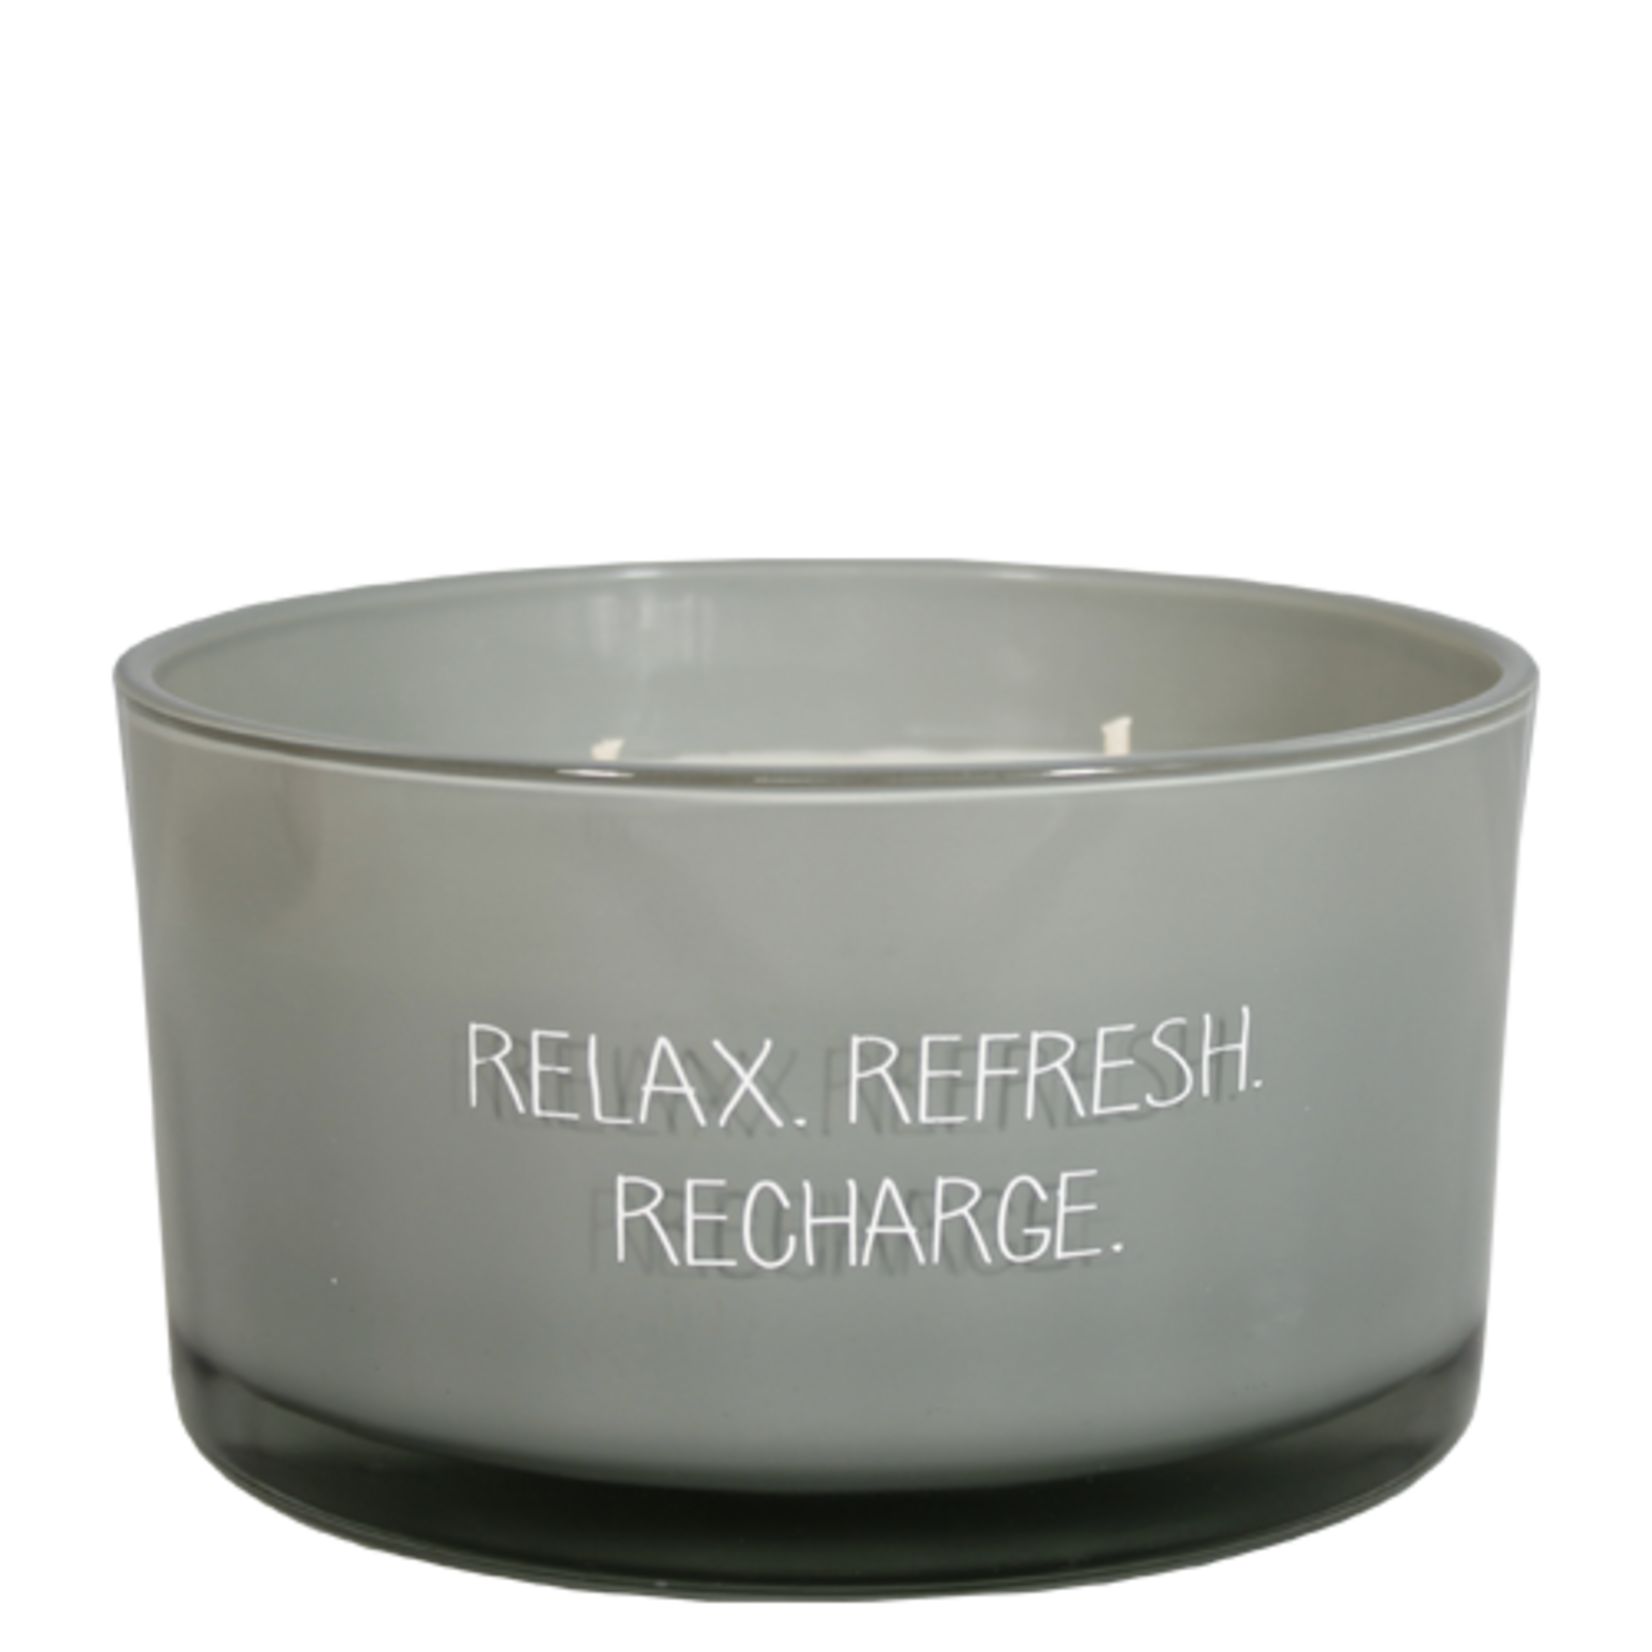 My Flame Sojakaars - Relax Refresh & Recharge